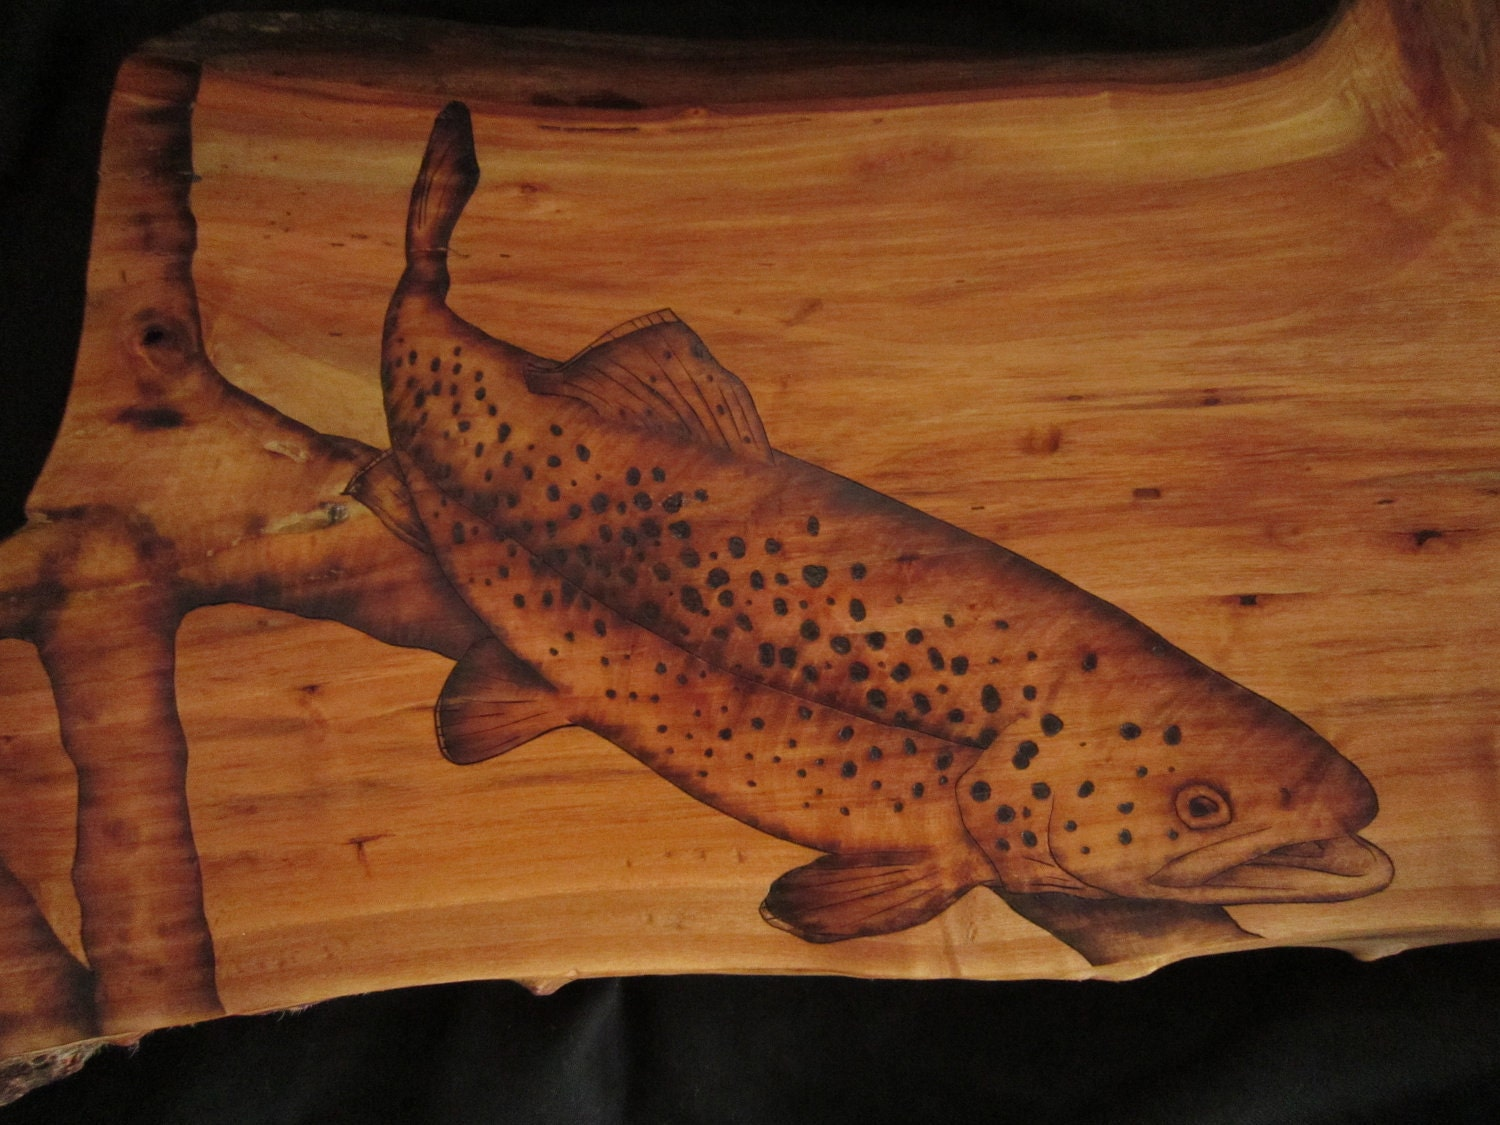 trout wall art - trout fishing nautical wall decor - brown trout pyrography - rustic wall hanging